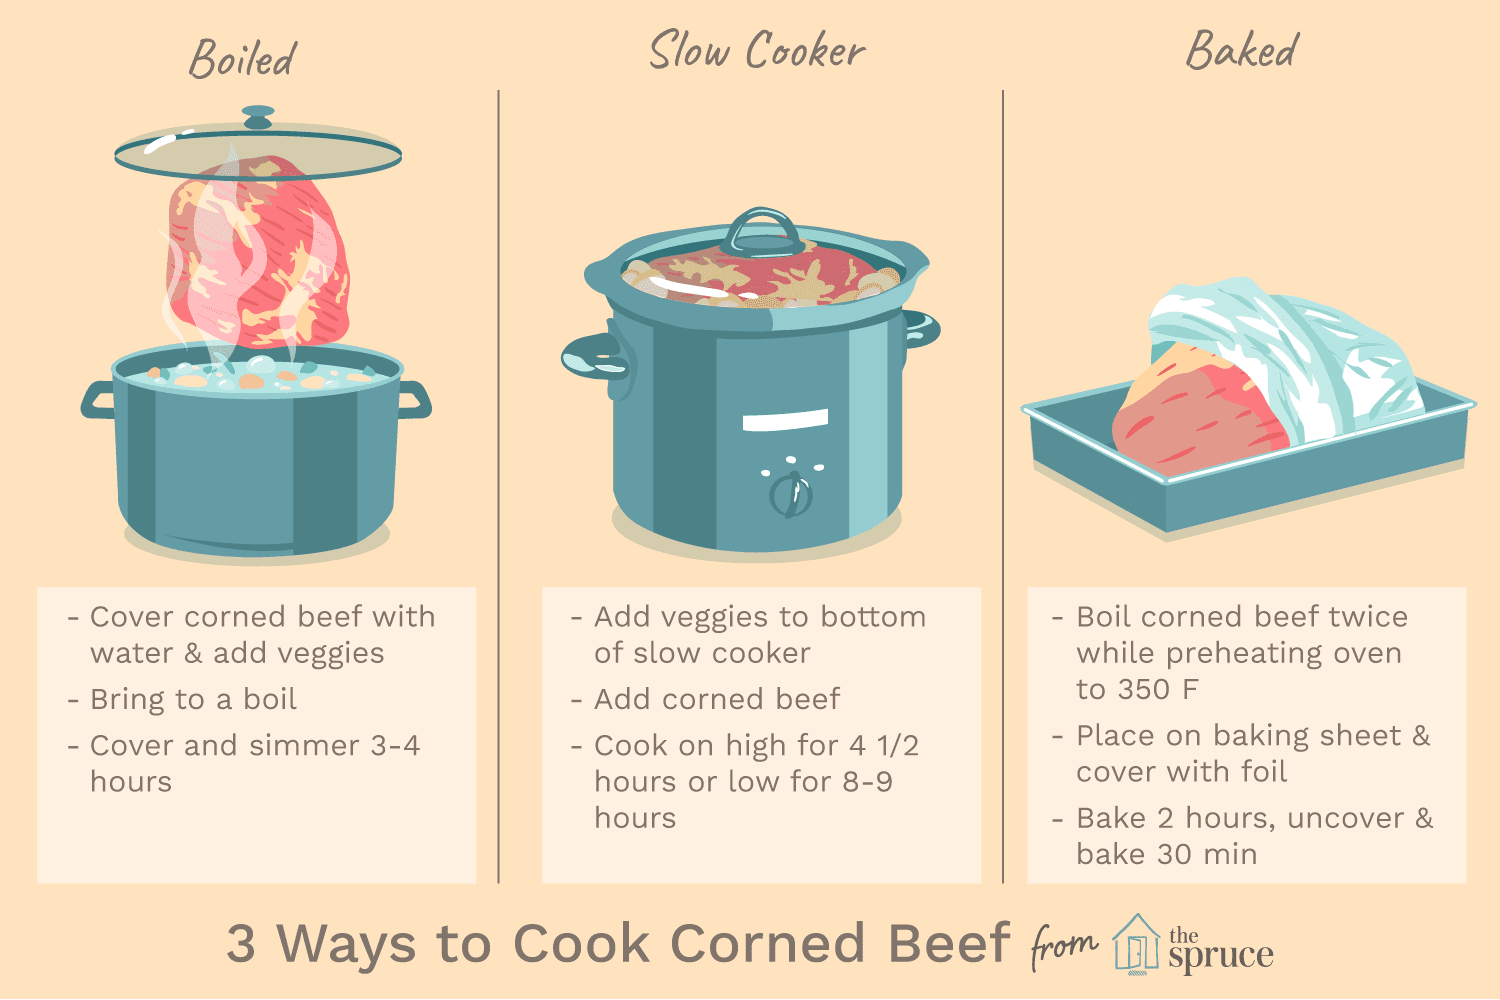 3 Ways to Cook Corned Beef